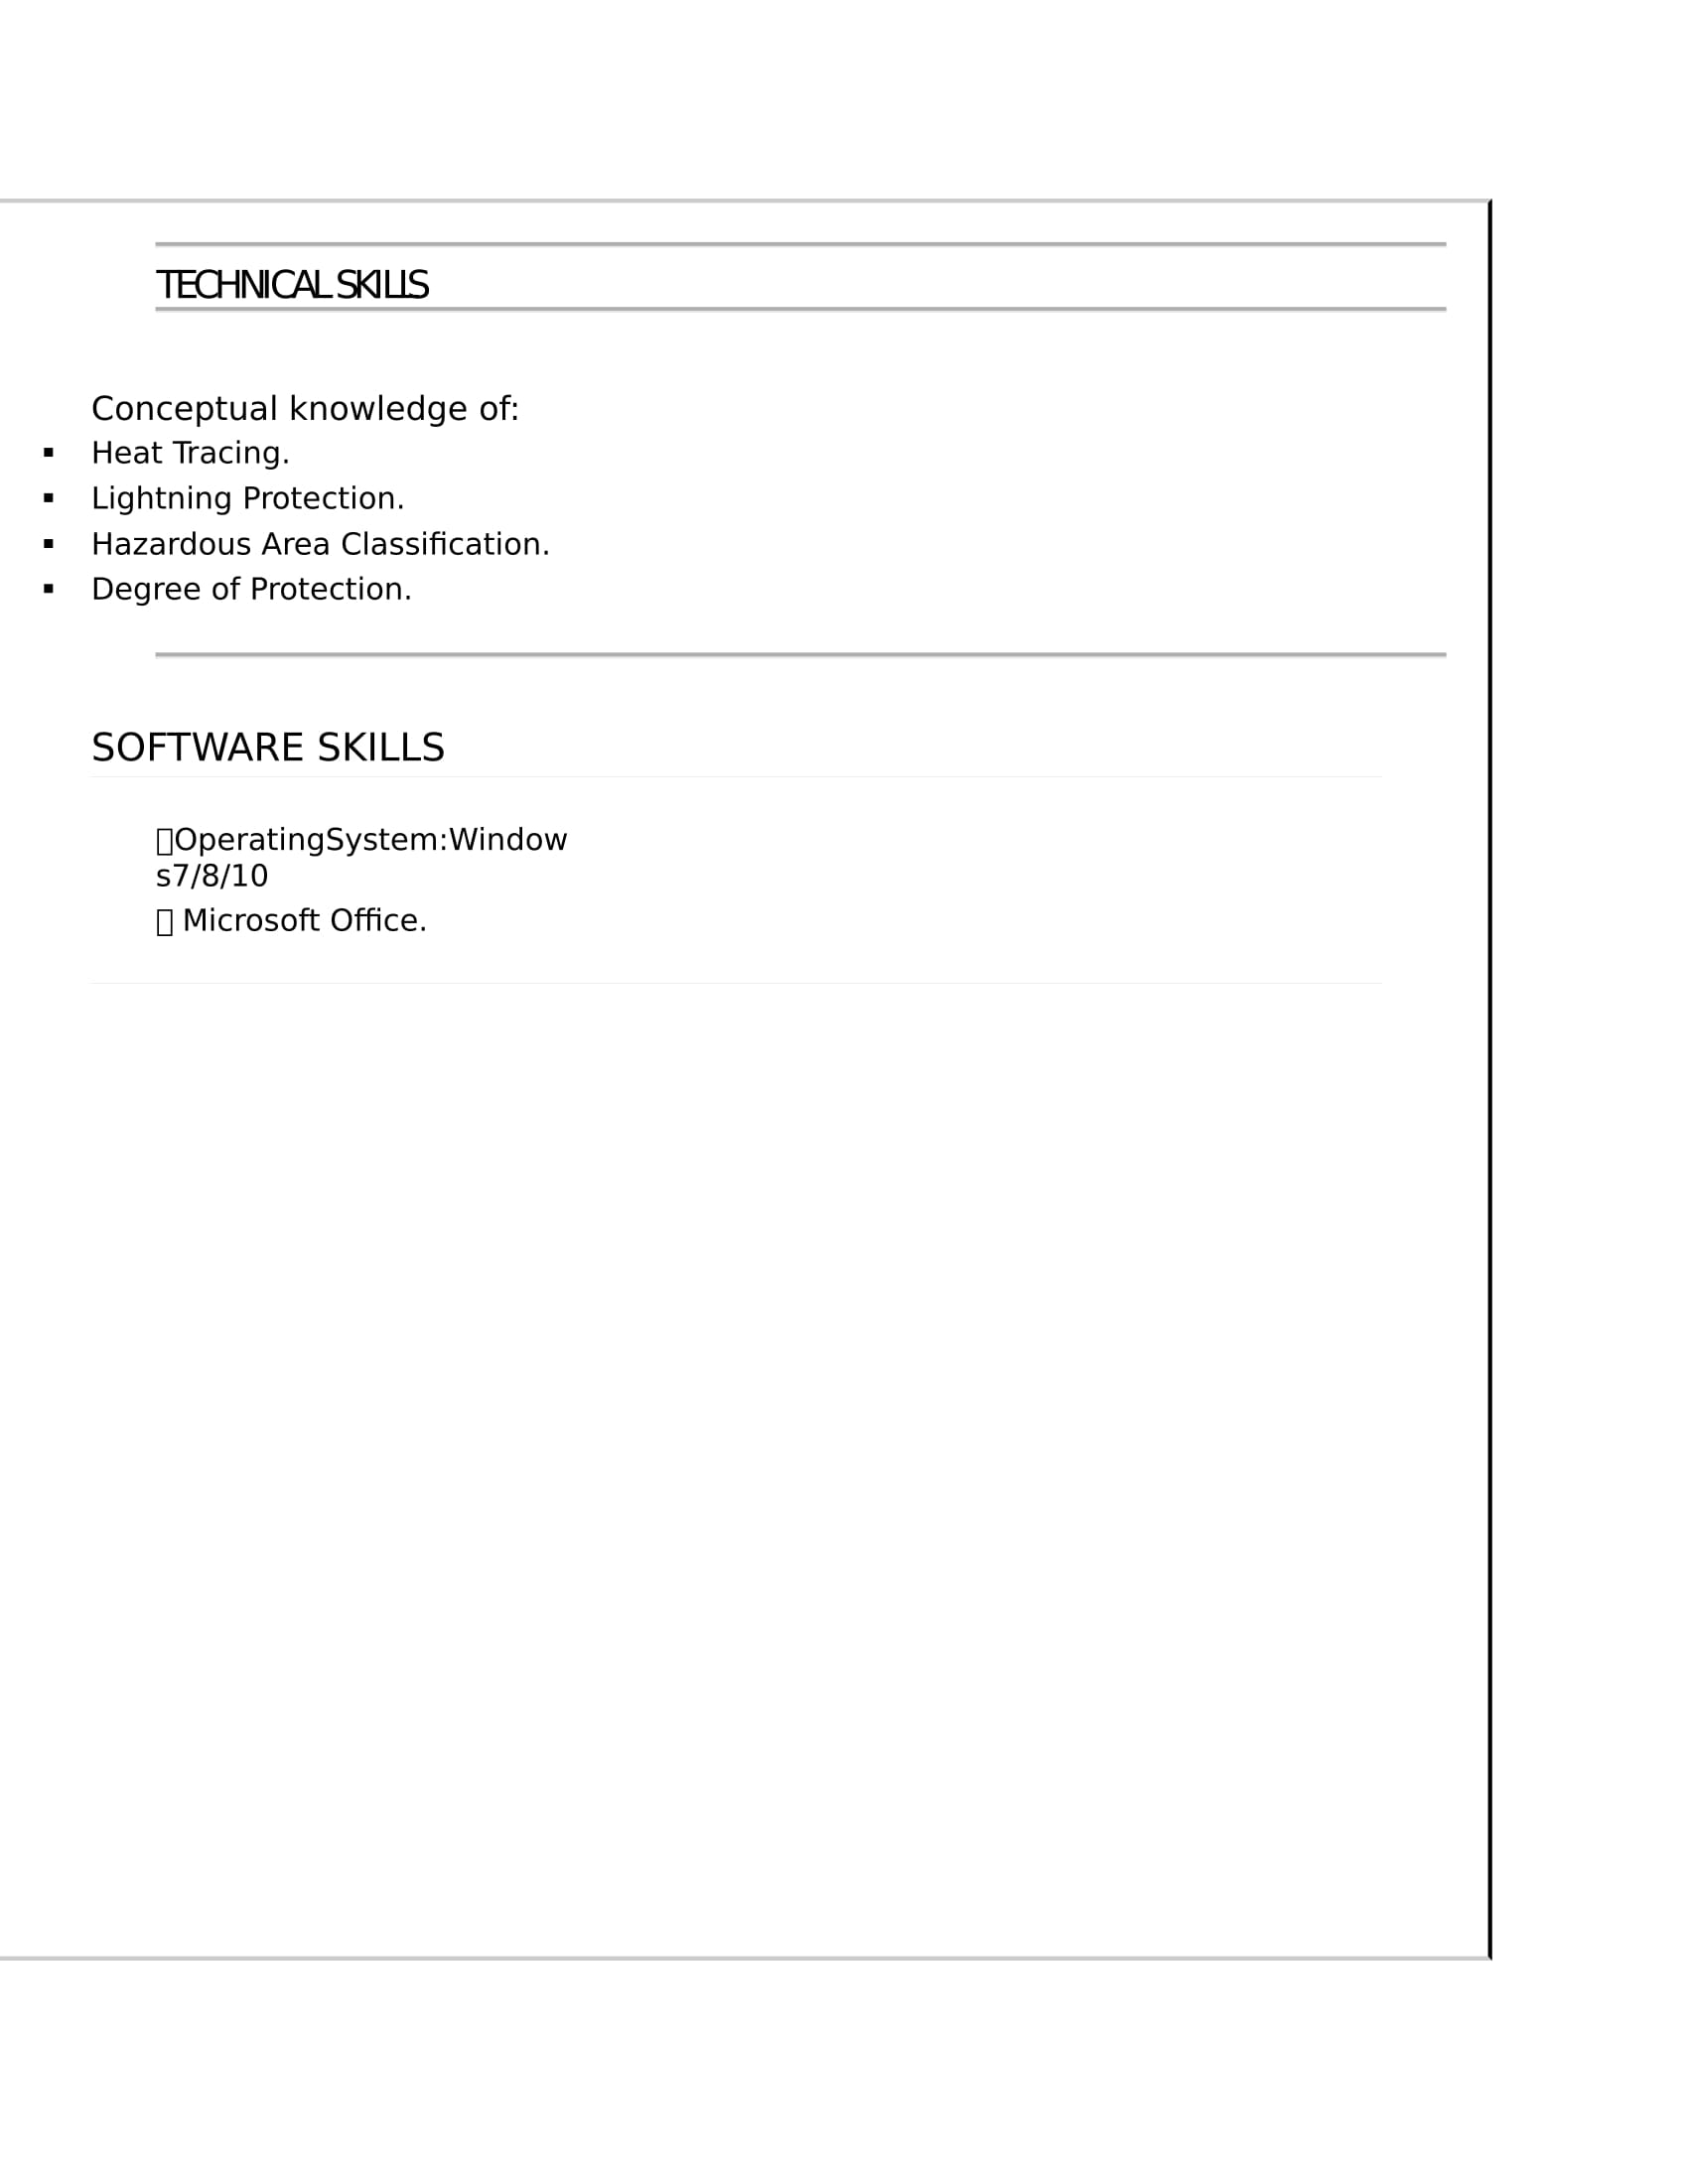 Resume Templates For Electrical Engineer Freshers ...